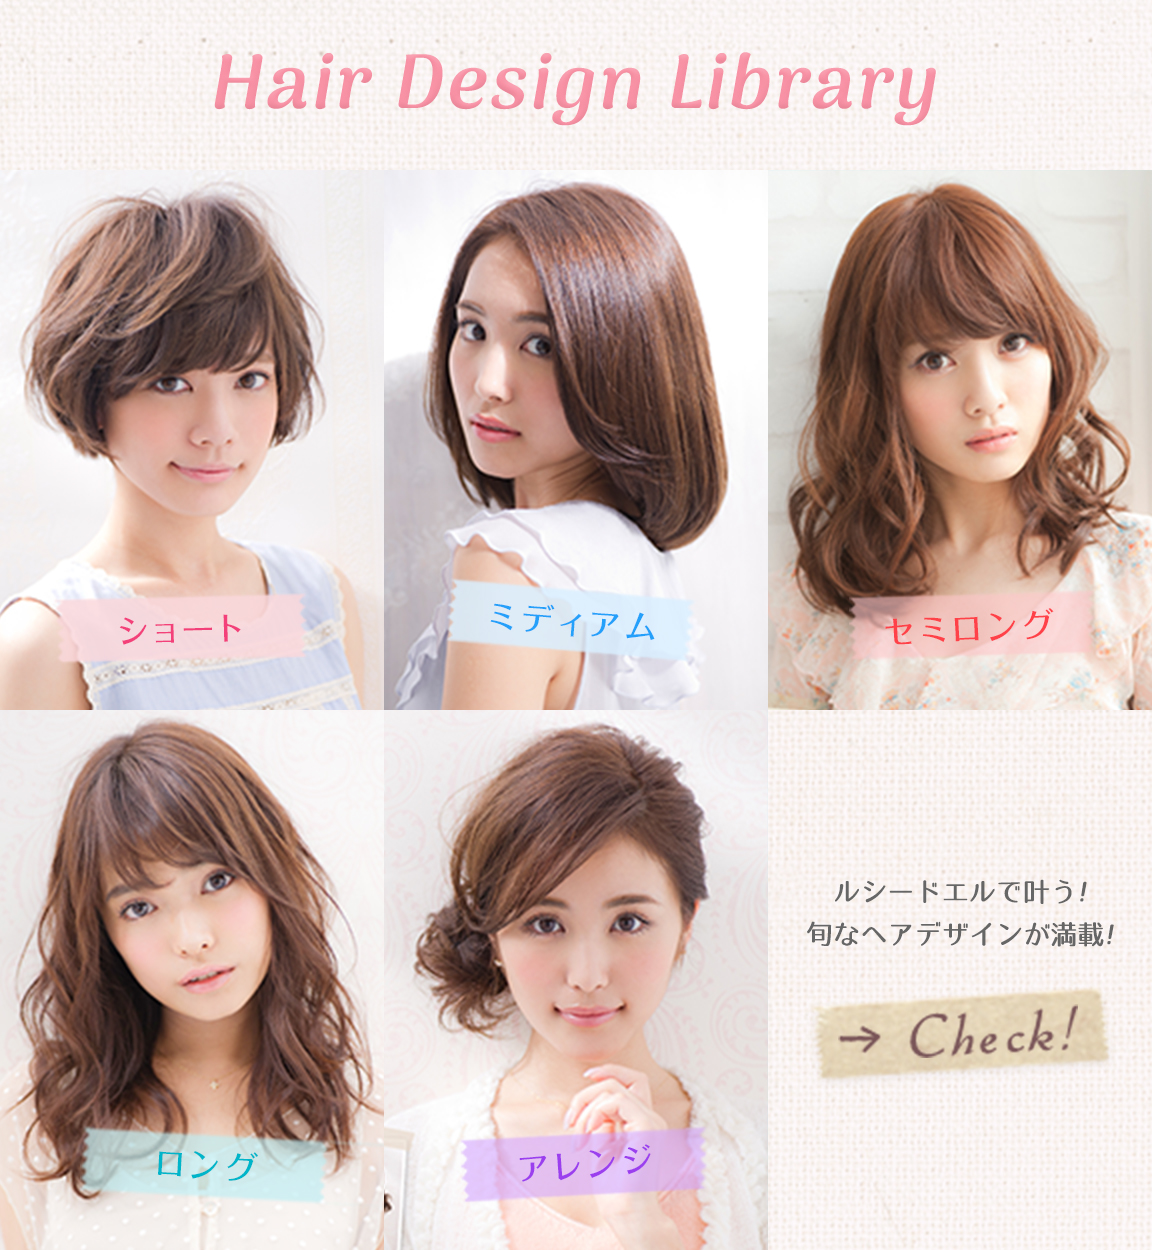 Hair Design Library